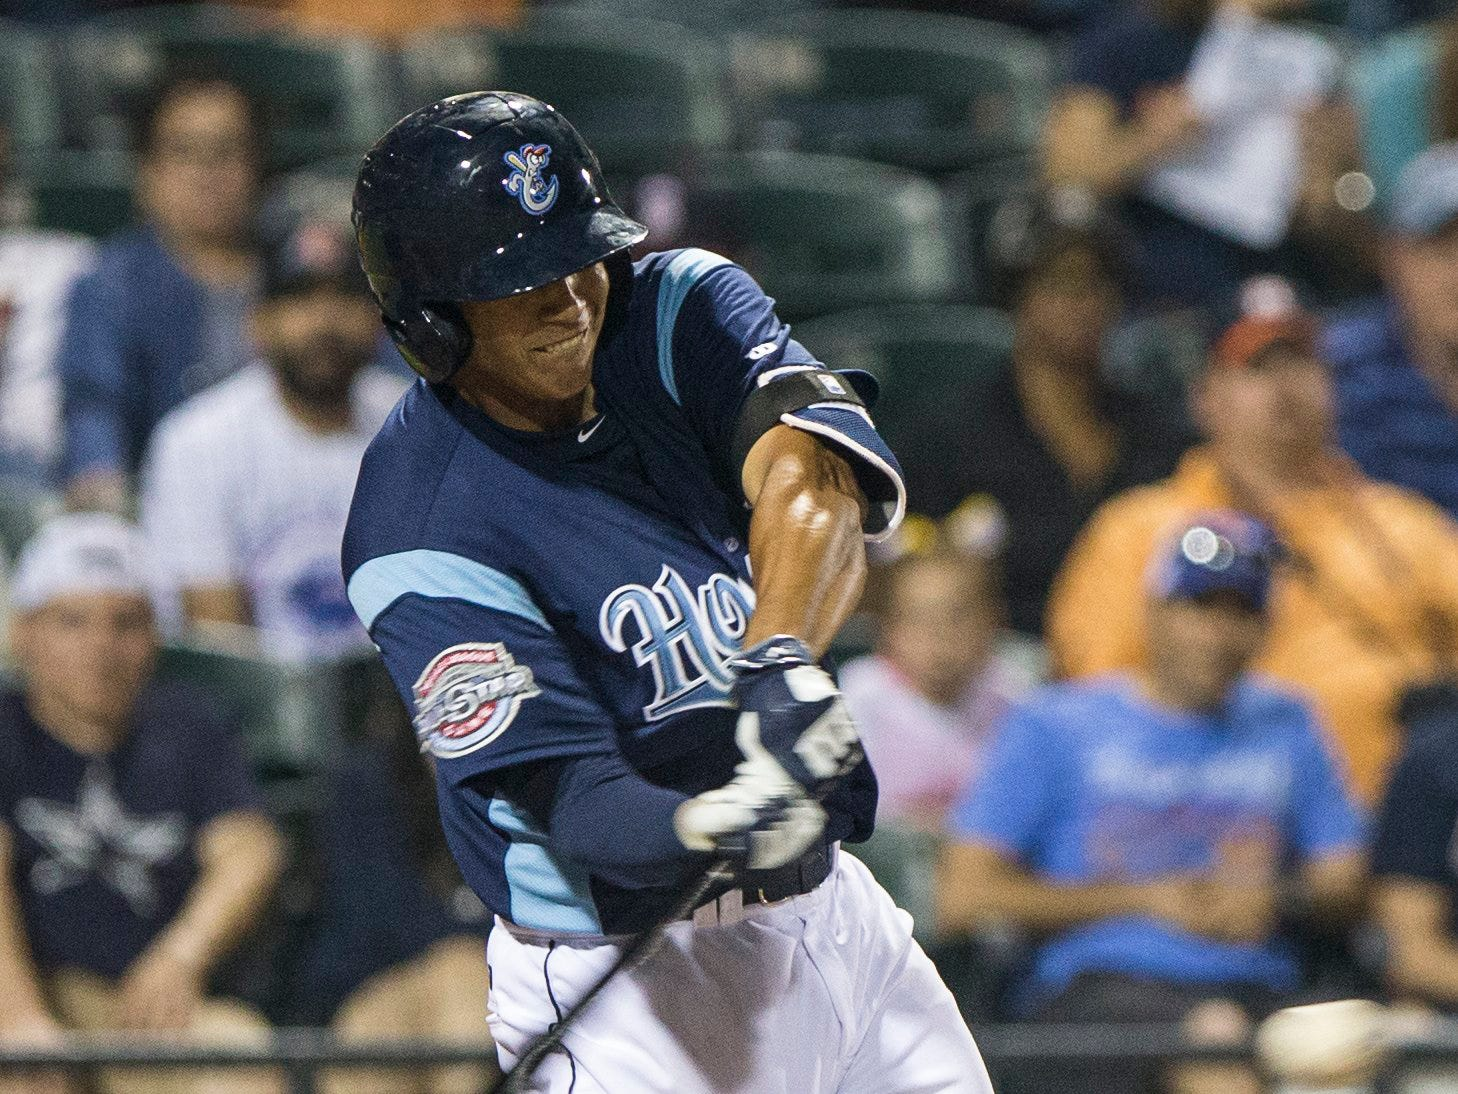 Andrew Mitchell/Caller-TimesCorpus Christi Hooks' Carlos Correa crushes the ball out of the park during their 2015 Texas League All Star Game the Houston Astros at Whataburger Field Thursday evening, April 2, in Corpus Christi.